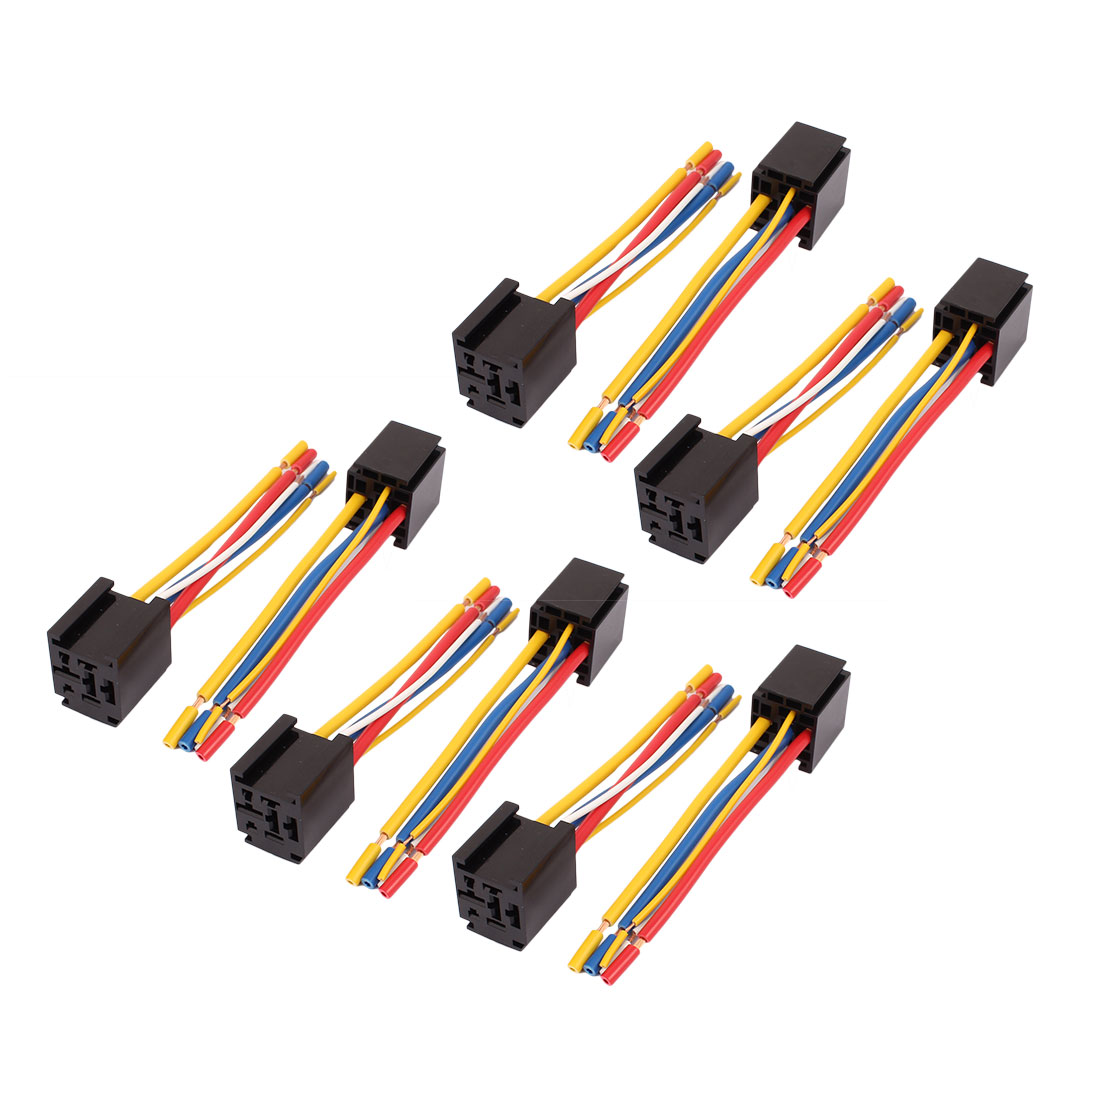 DC 12V/24V 80A 5-Pin Wire Relay Socket Harness Connector 10pcs for Car Truck